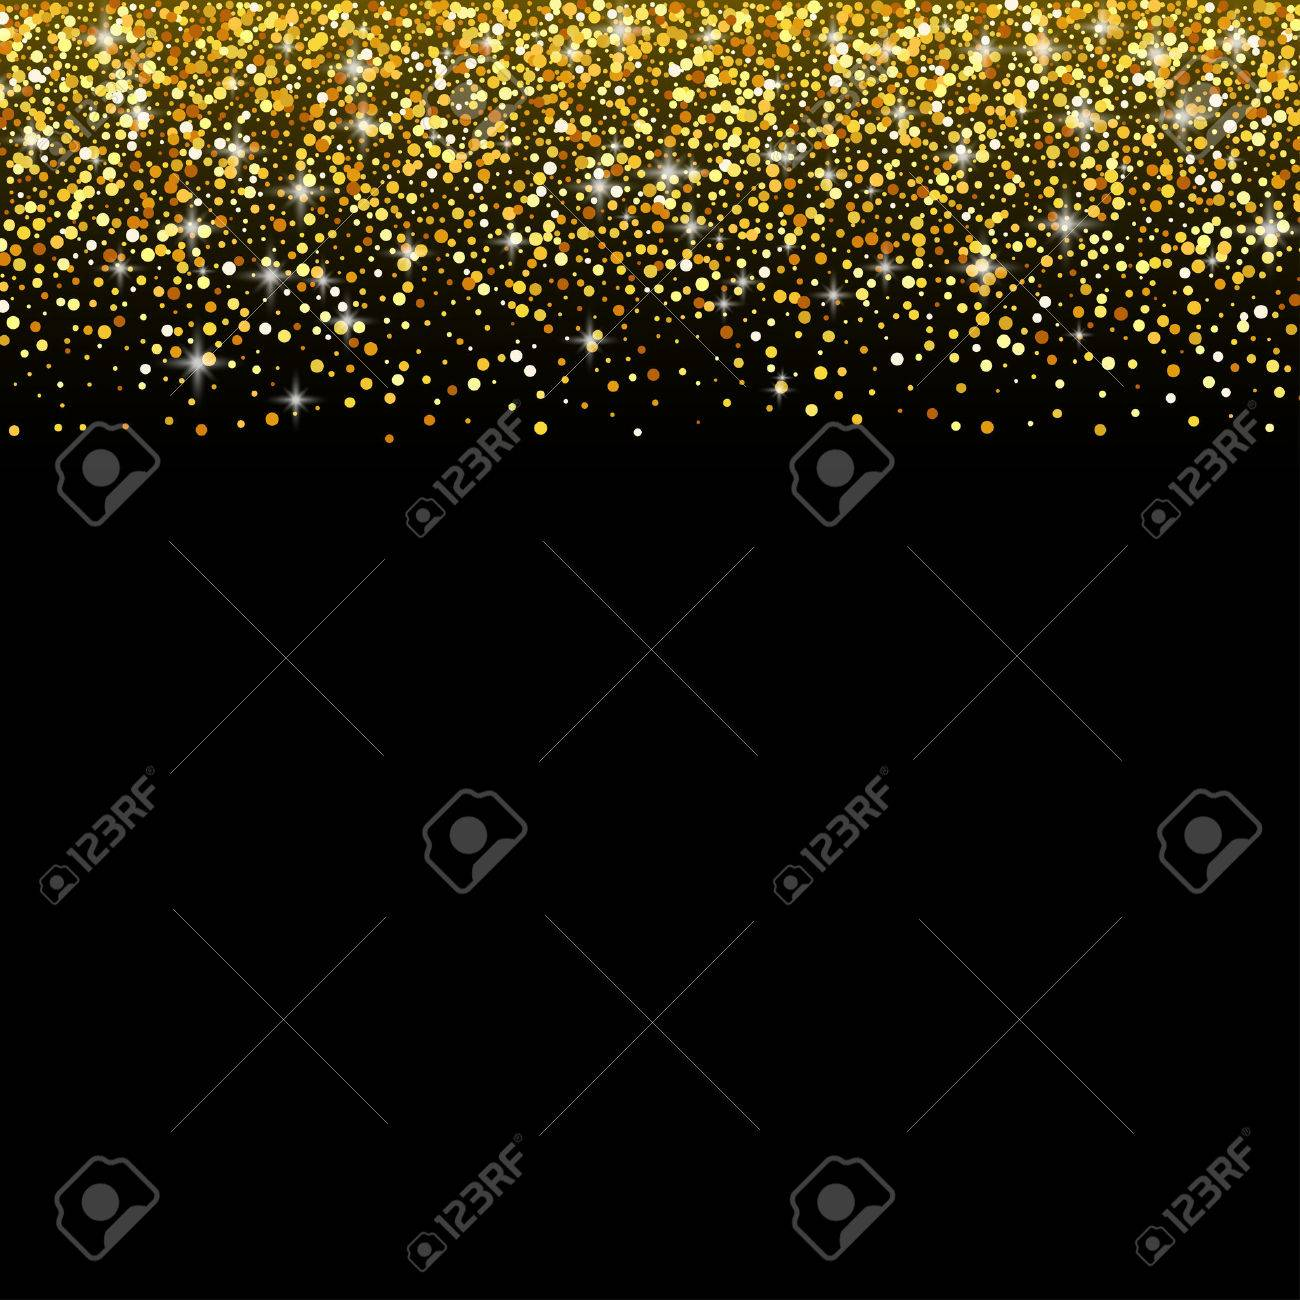 vector black background with gold glitter sparkle greeting card